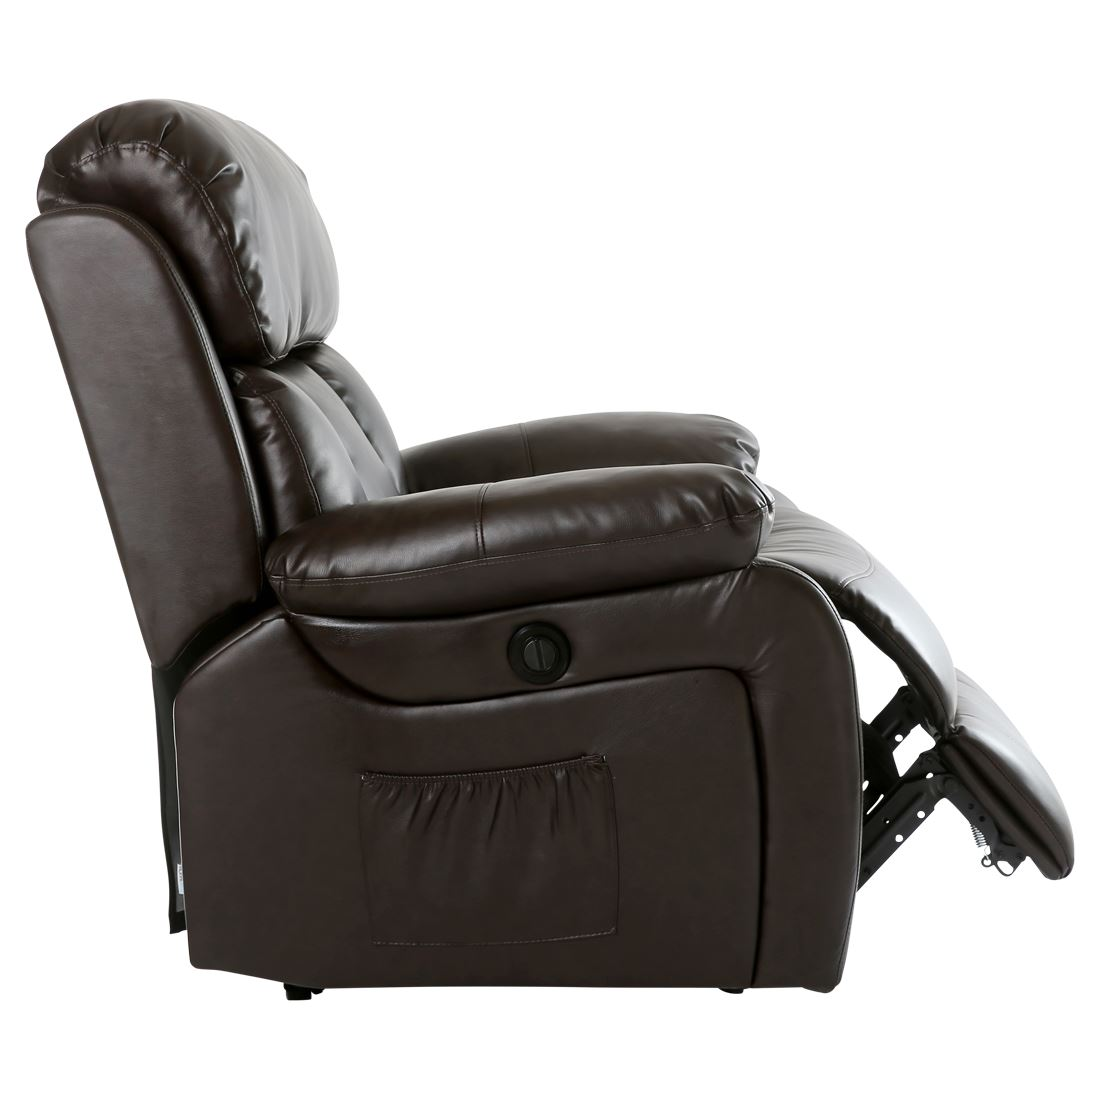 CHESTER ELECTRIC HEATED LEATHER MASSAGE RECLINER CHAIR SOFA